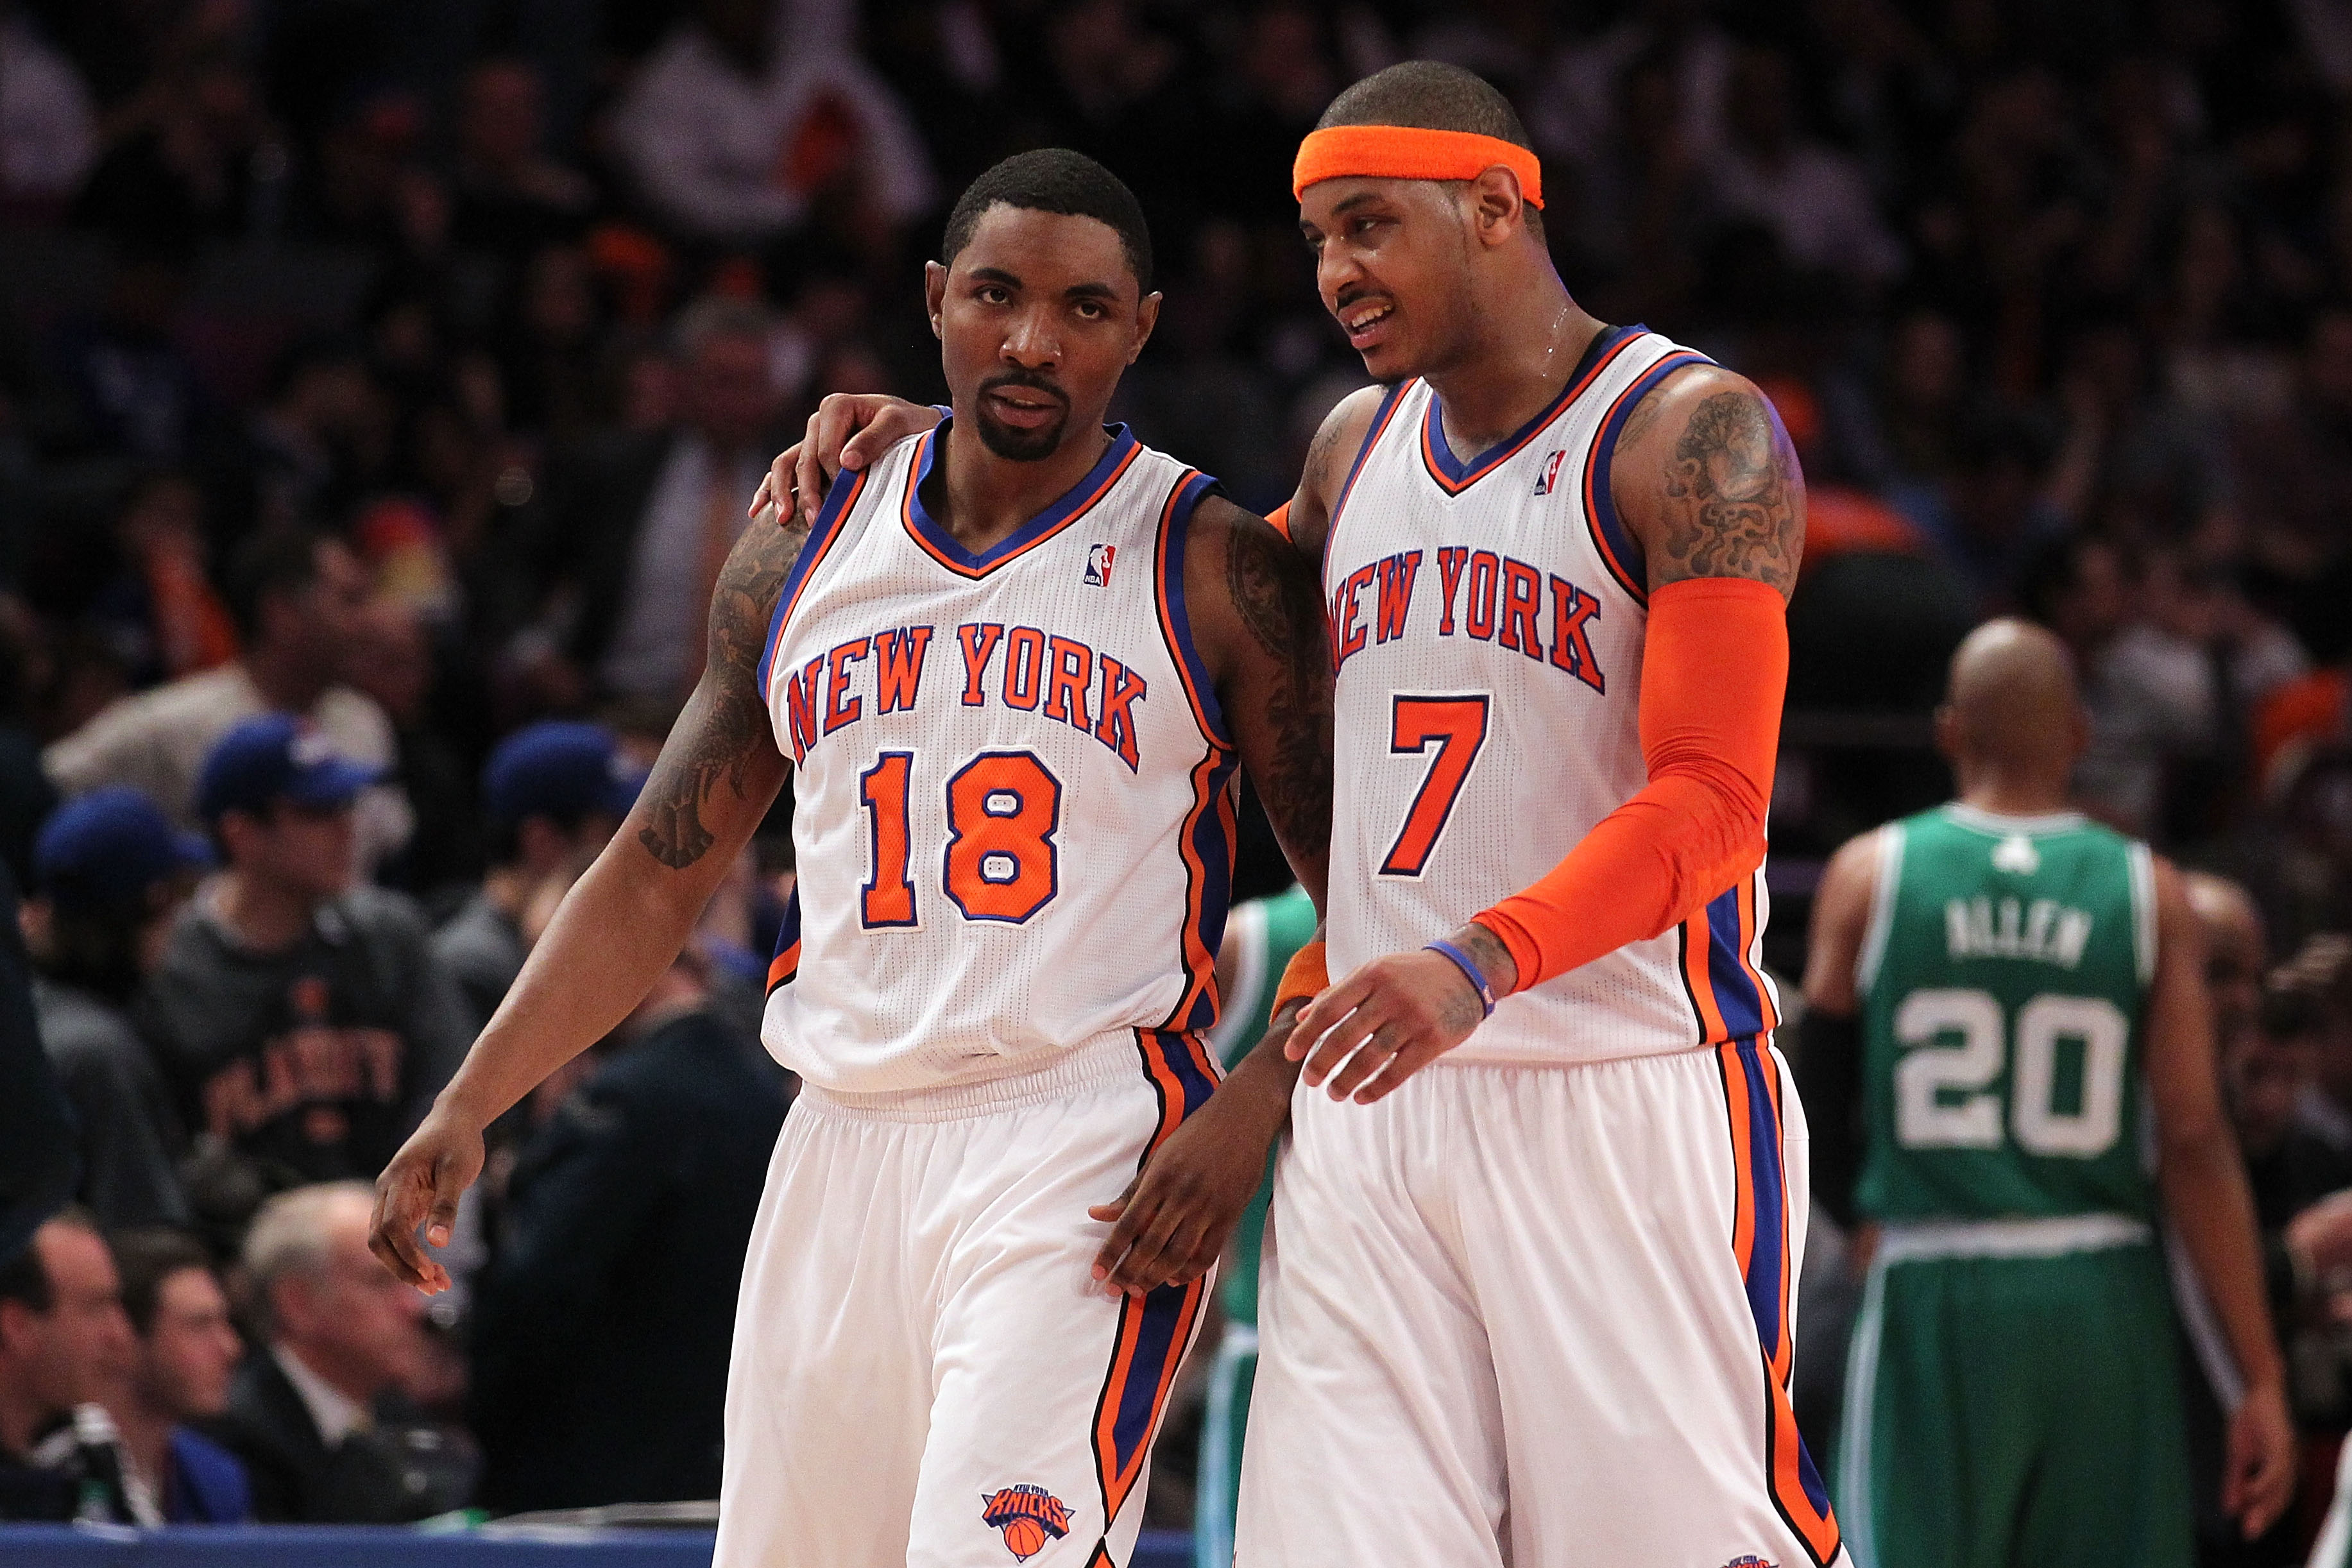 NEW YORK, NY - APRIL 22:  (L-R) Roger Mason #18 and Carmelo Anthony #7 of the New York Knicks talk as they walk up court against the Boston Celtics in Game Three of the Eastern Conference Quarterfinals in the 2011 NBA Playoffs on April 22, 2011 at Madison